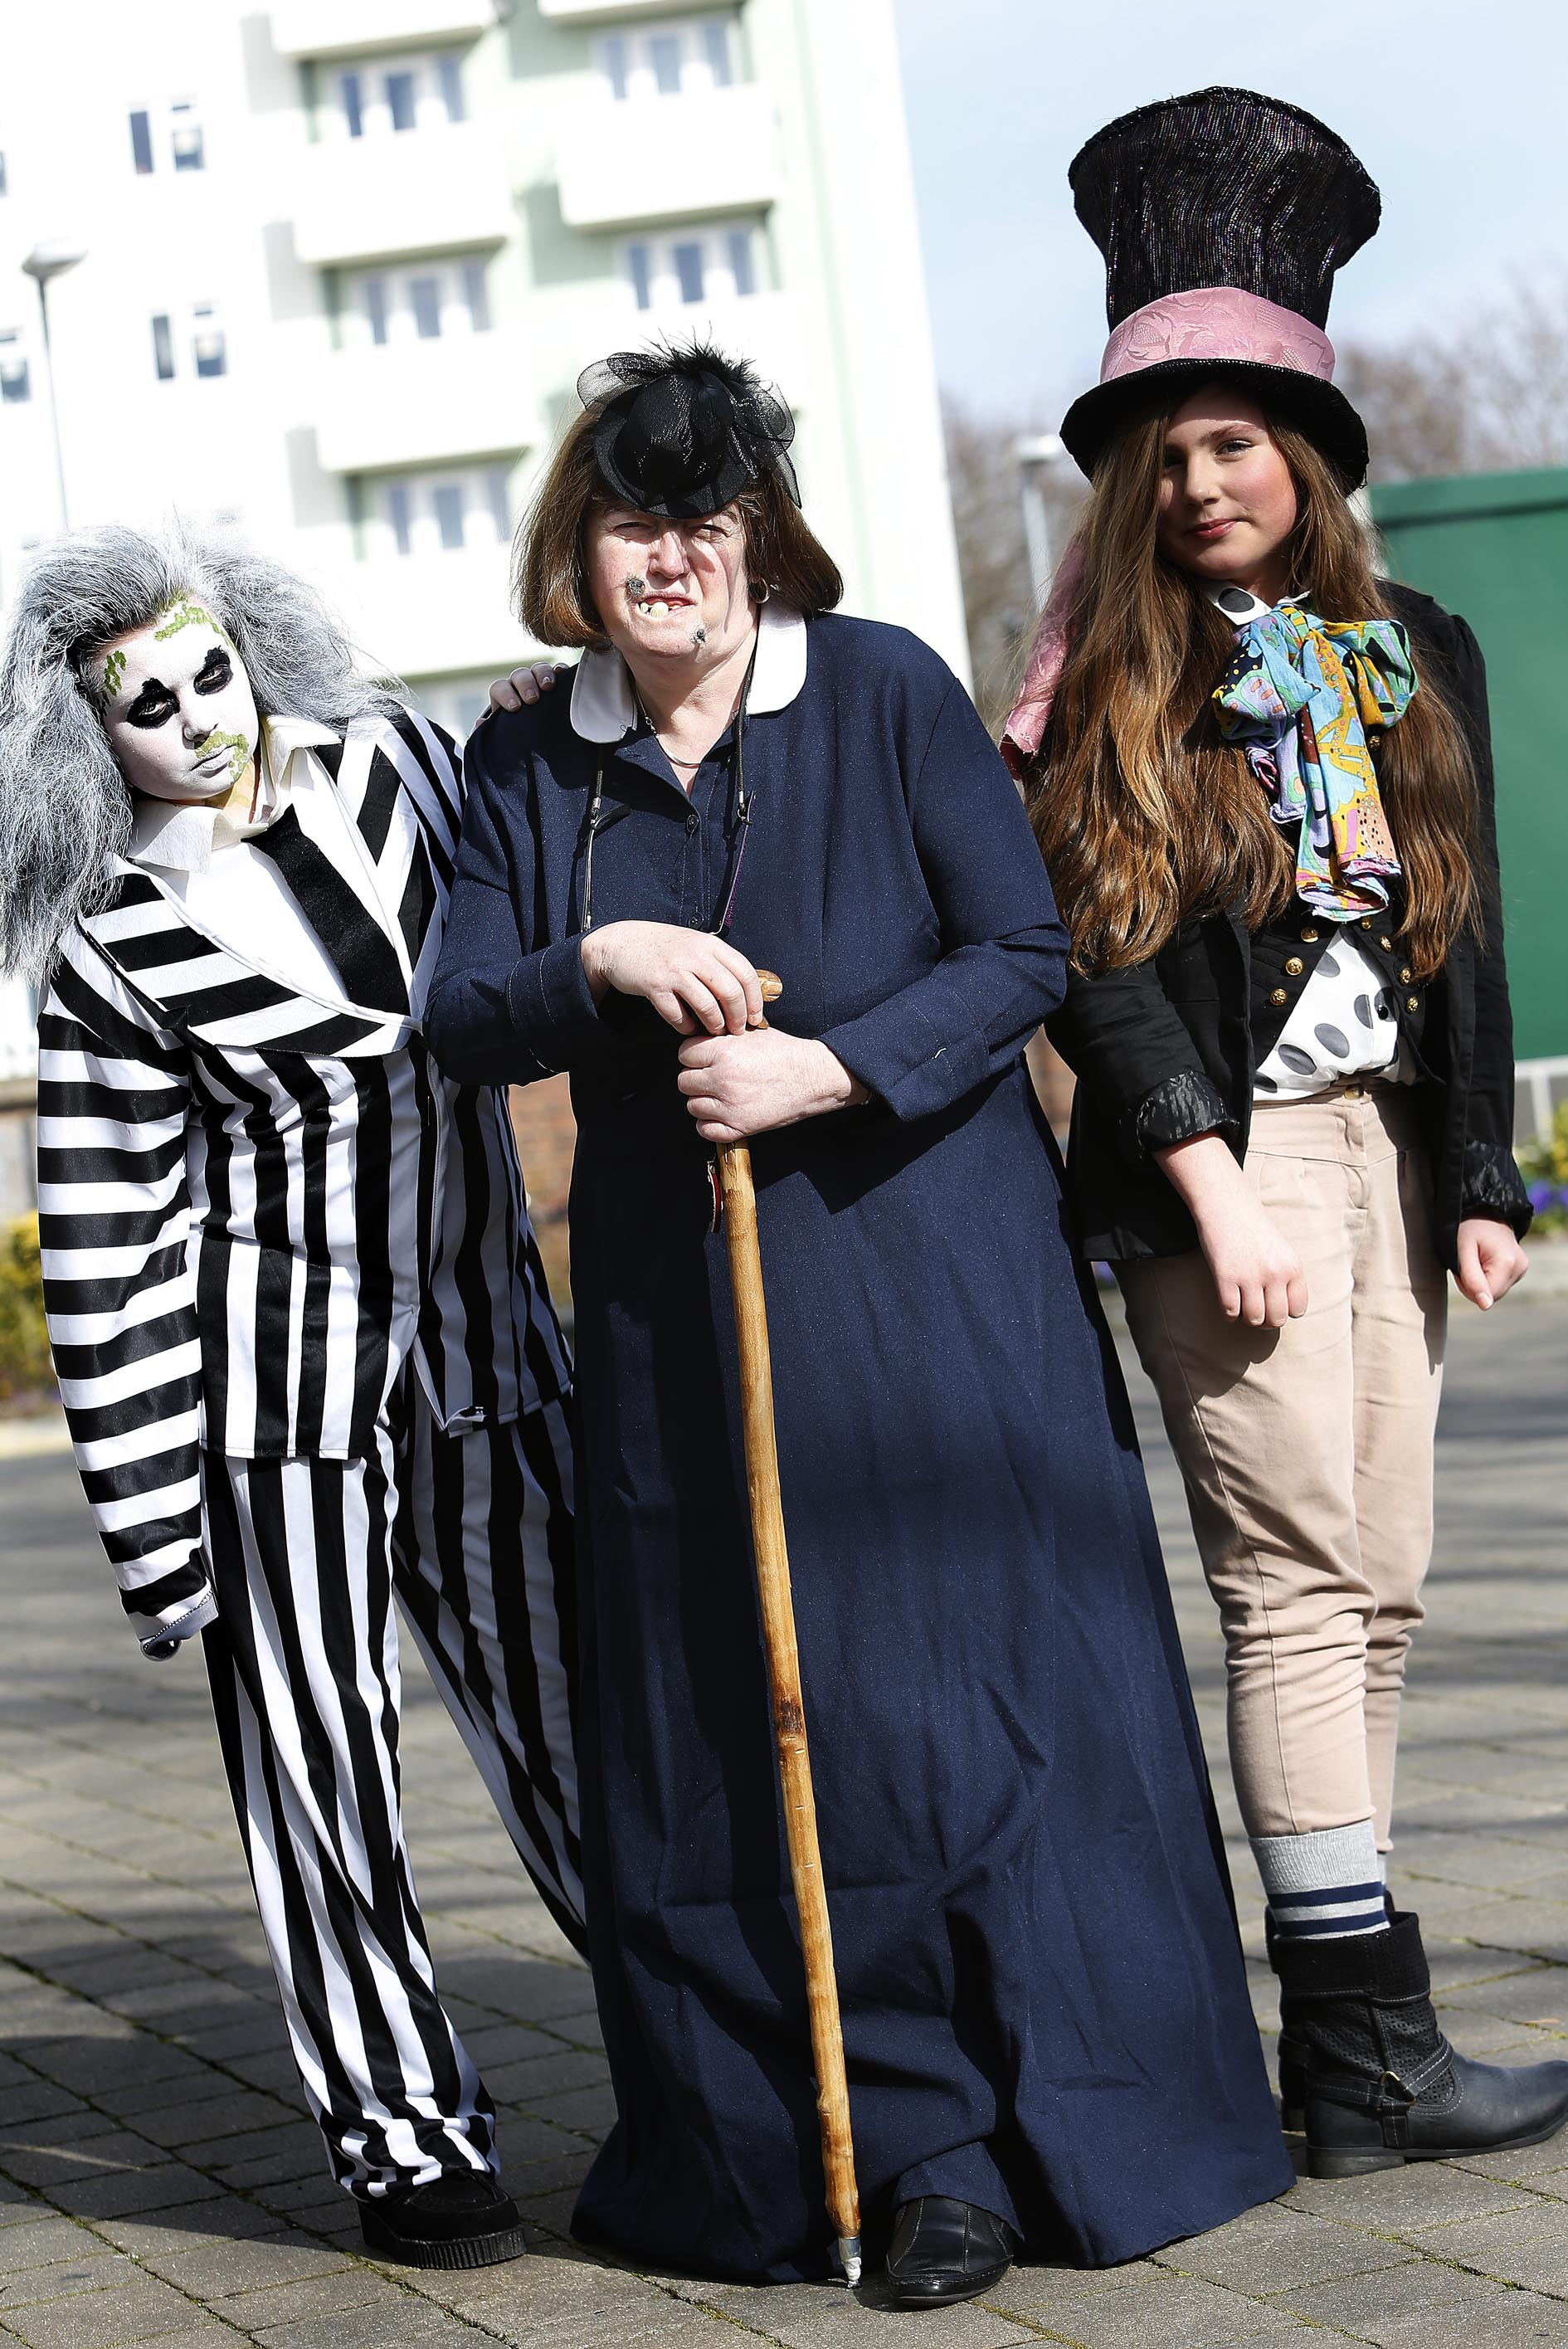 Students Megan, 14, dressed as Beetle Juice while her friend Carla, 12, dressed as the Mad Hatter. They posed for a picture with English teacher Eileen Bolton